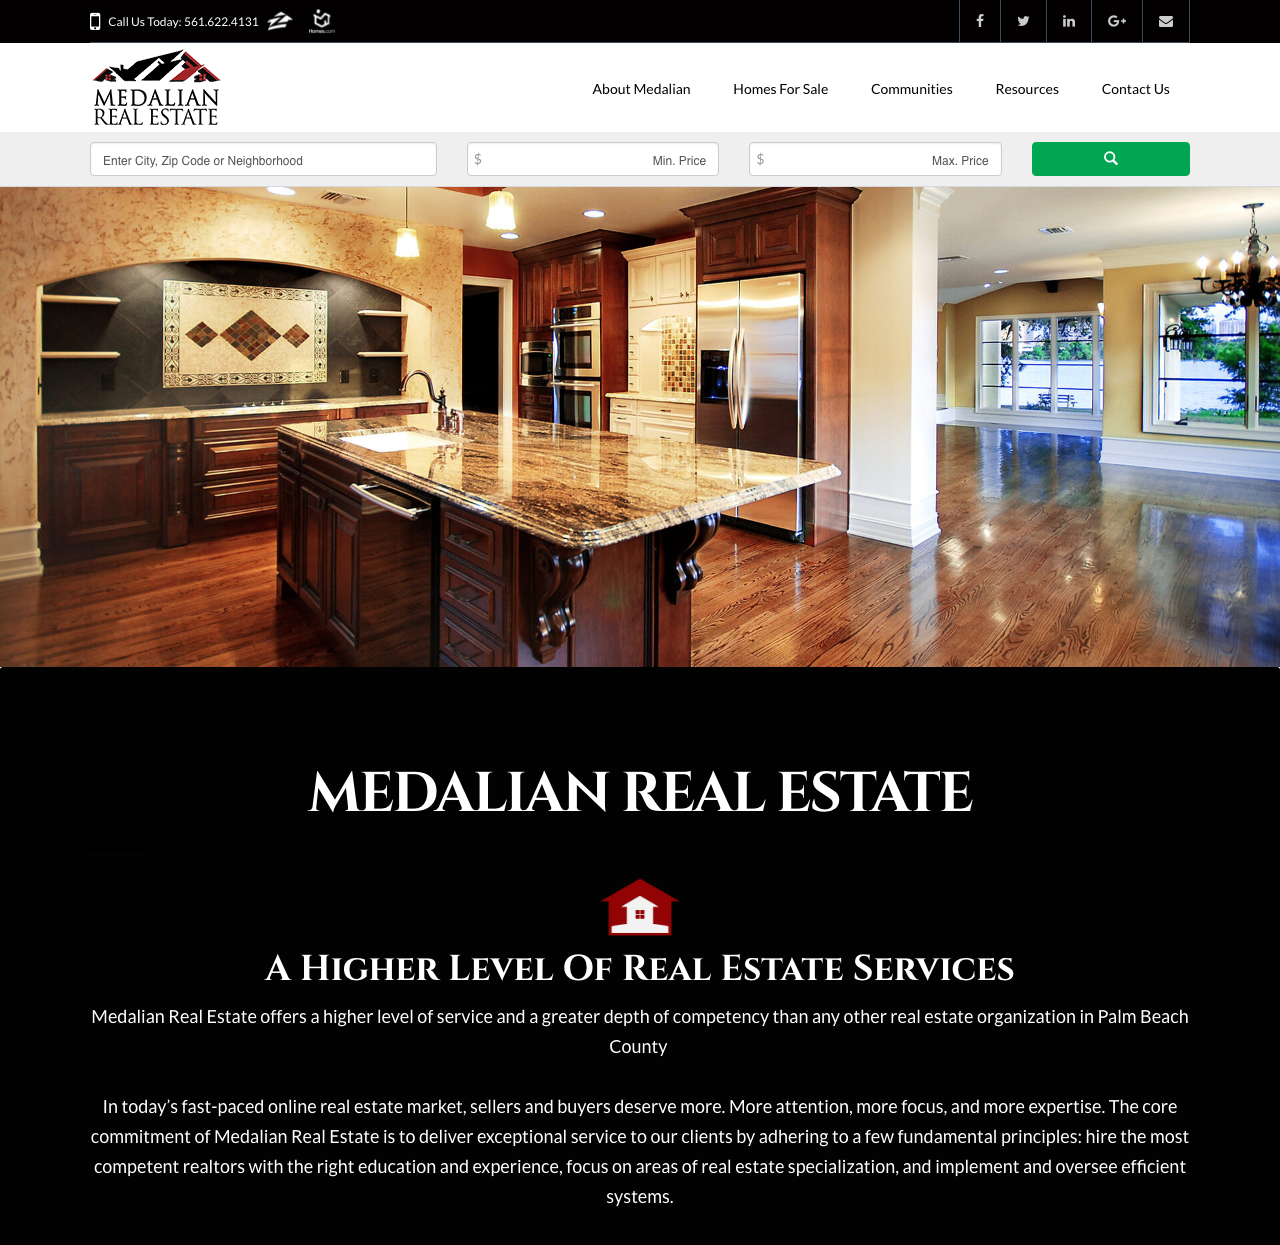 Real Estate Websites  Real Estate Lead Generation ClickFred - Us zip code website